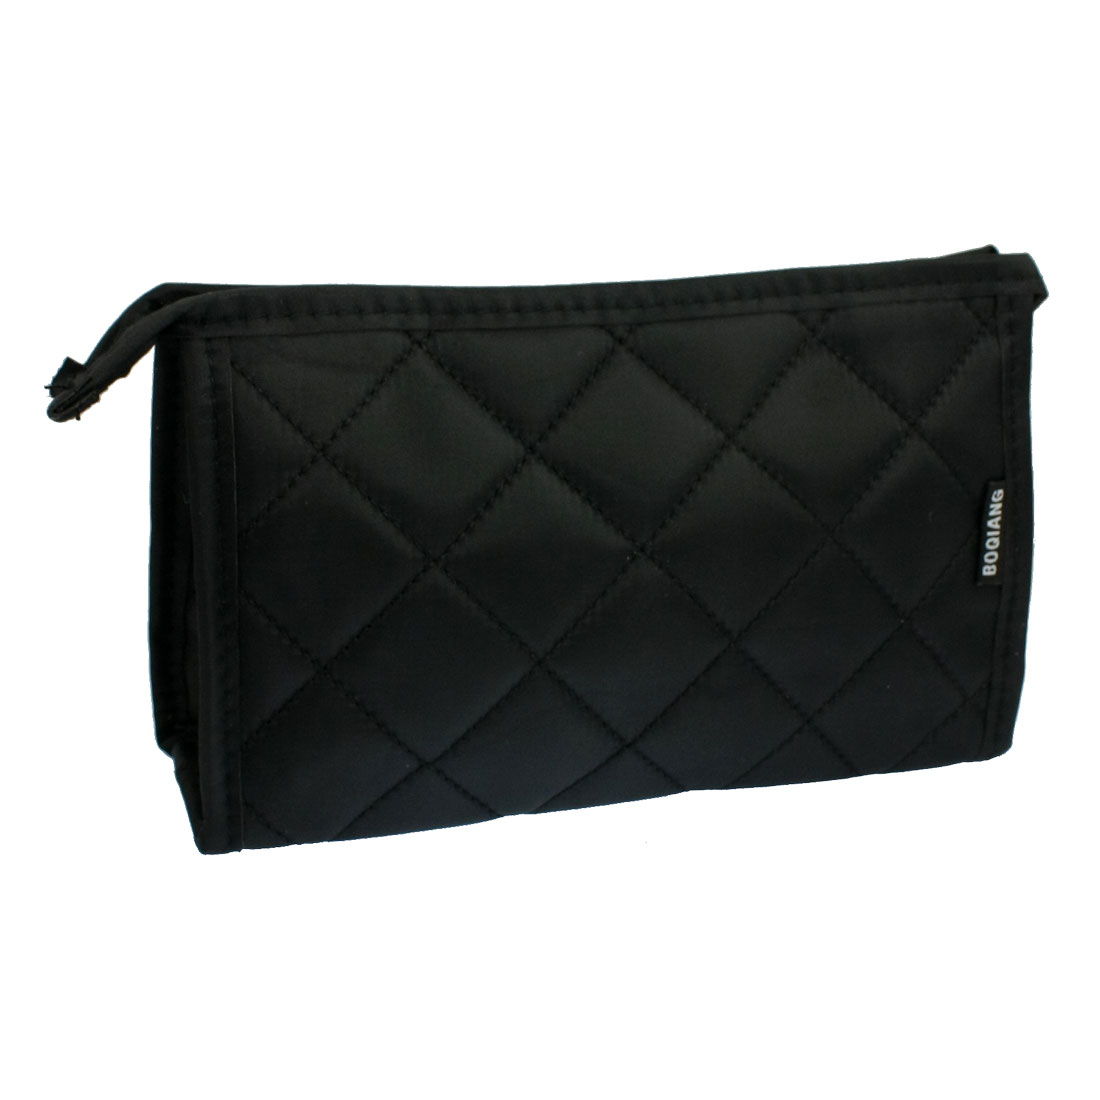 Check Print Zip Up Make Up Black Cosmetic Pouch Bag w Mirror for Women